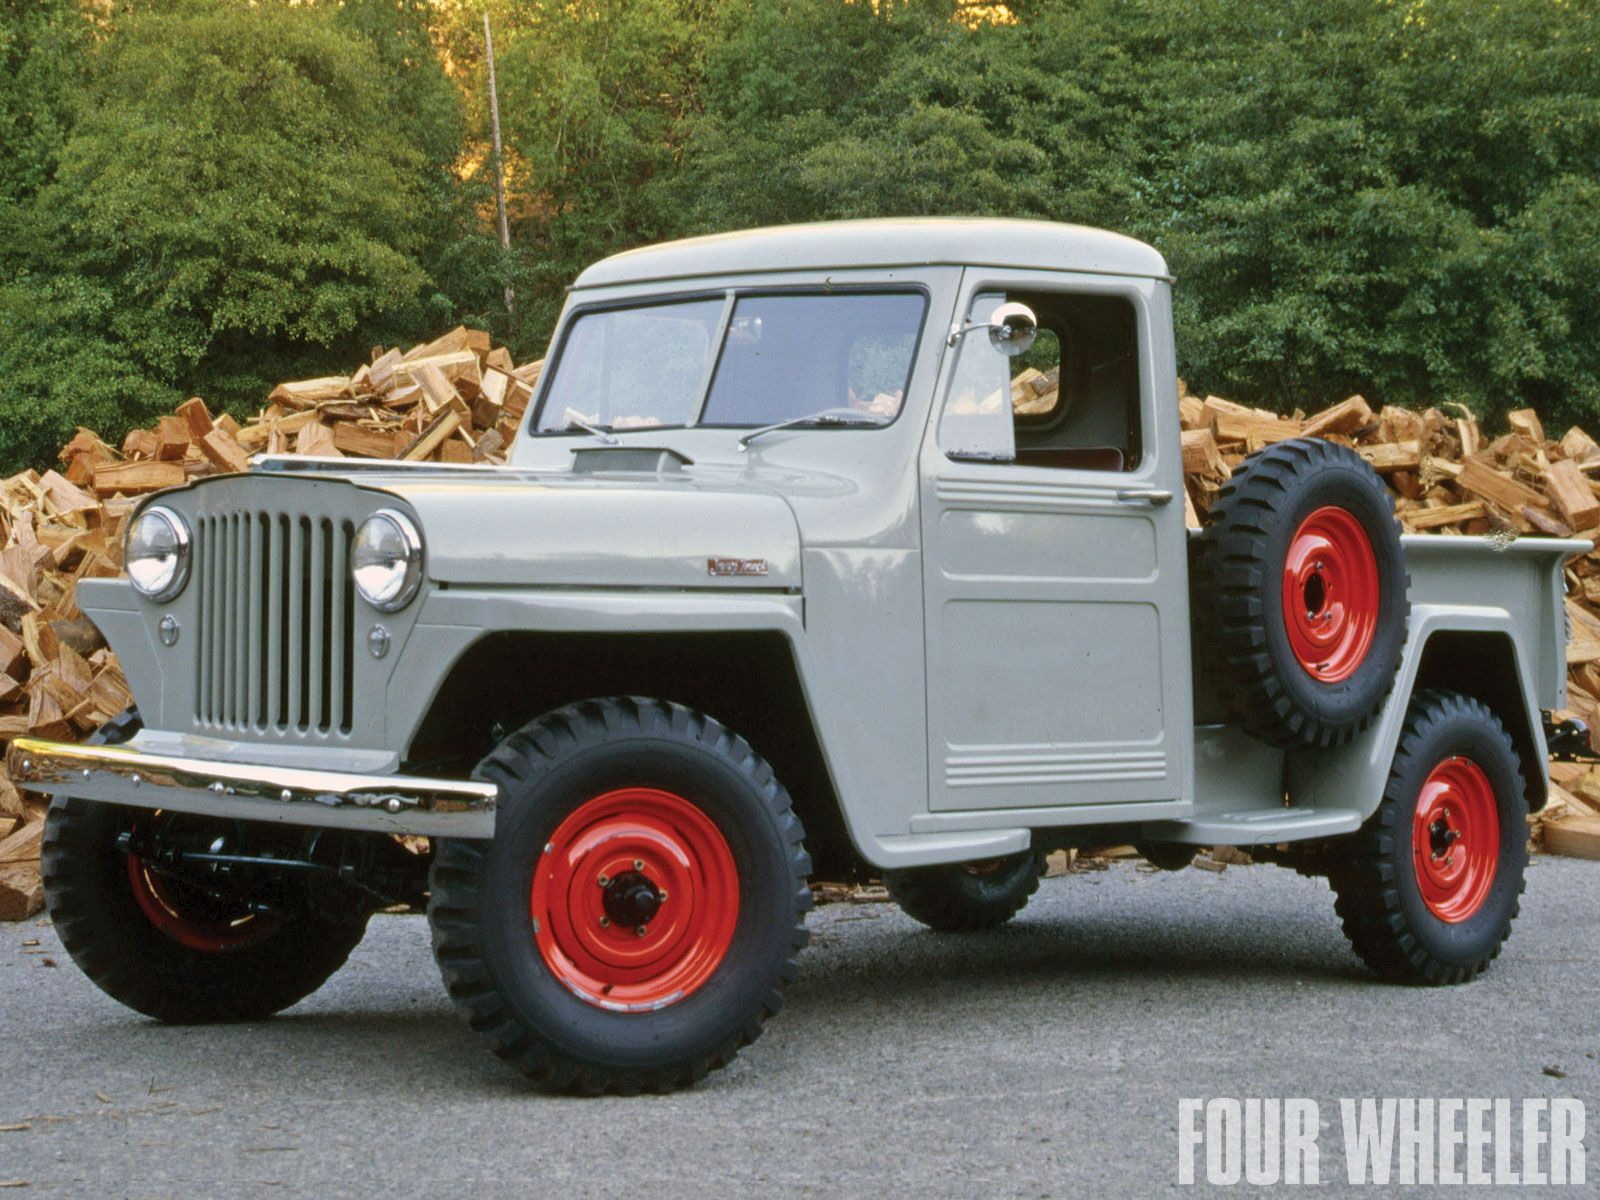 Flatfendersforever 1944 coast guard invader jeep prototype mb based it was stretched 36 inches held 10 men and could travel at 60mph speeds ac